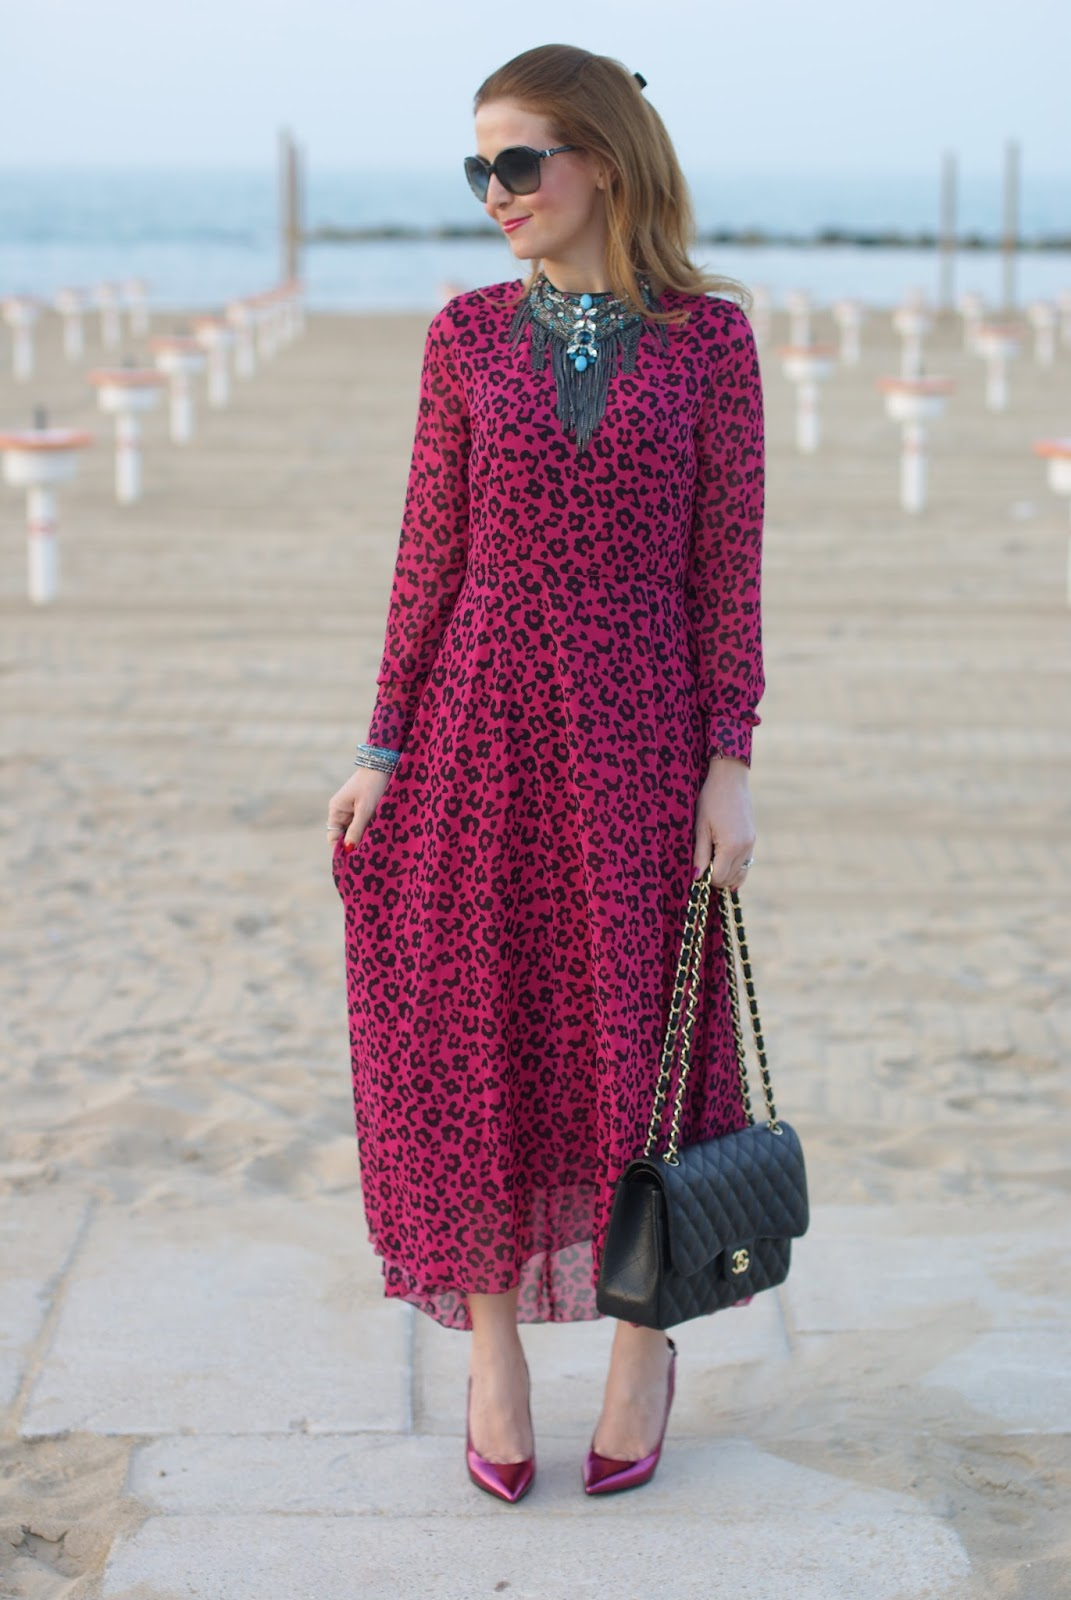 Gipsy look, Chanel 2.55 bag, pink leopard chiffon dress, Romwe maxi dress, Fashion and Cookies, fashion blogger, fashion blog